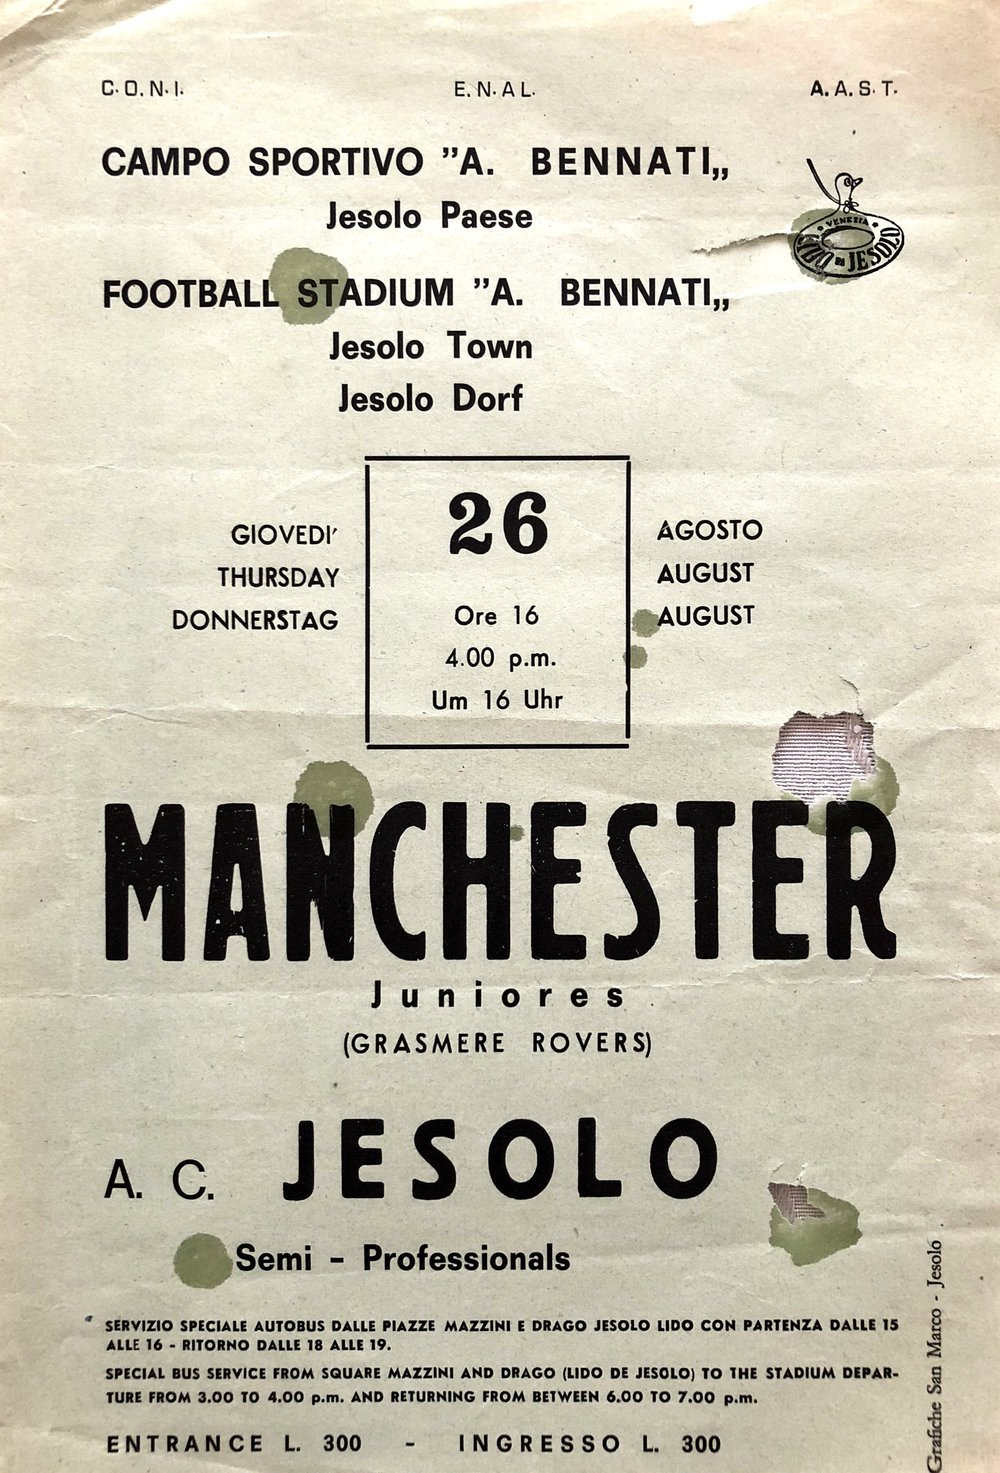 When the club toured it went under the name of 'AFC Manchester'. Here's a poster advertising a match vs Jesolo.